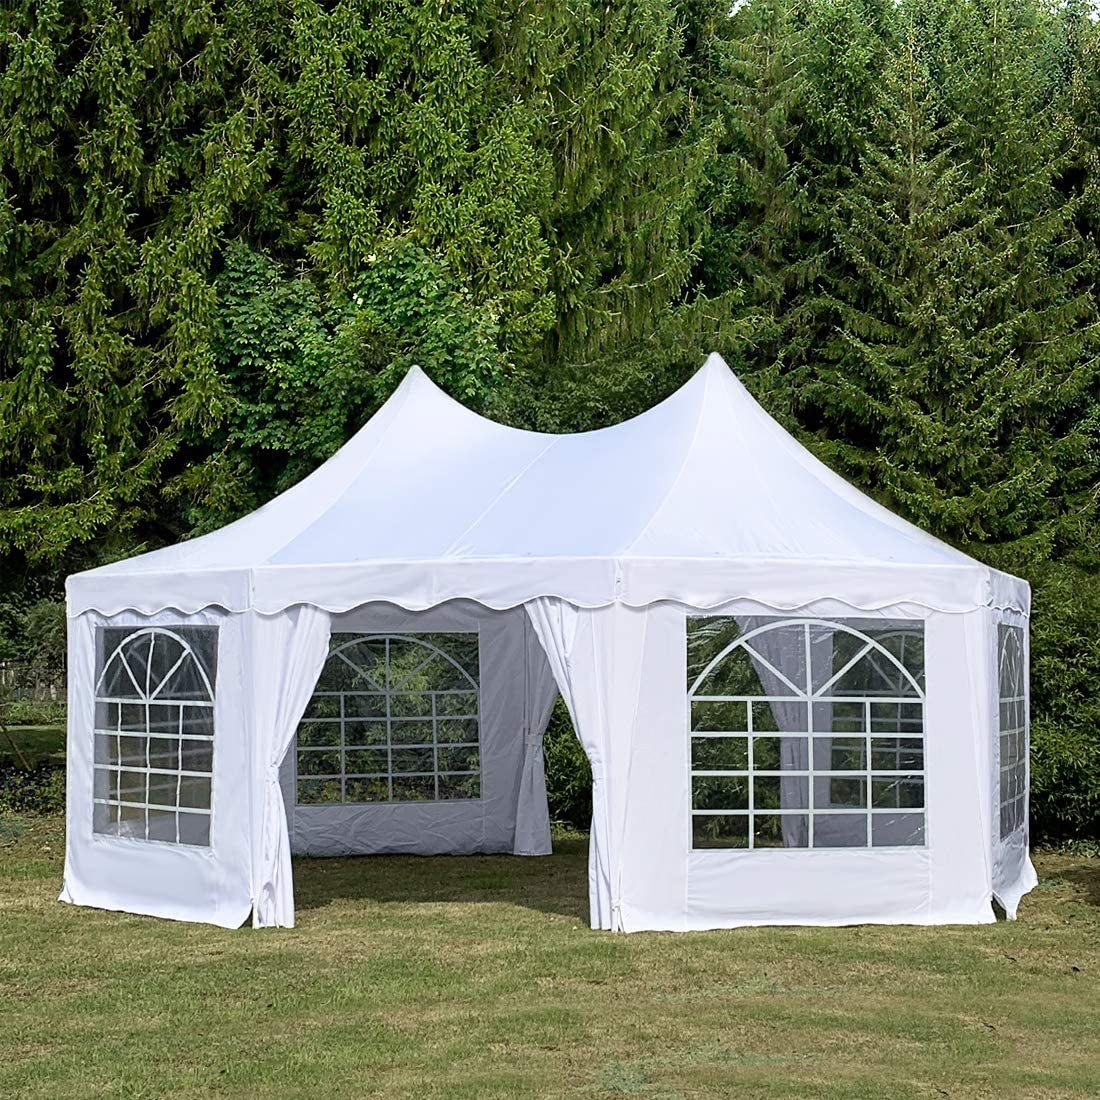 Quictent 20×14.5ft Party Tent Heavy Duty Wedding Tent Octagonal Gazebo Outdoor Canopy-White